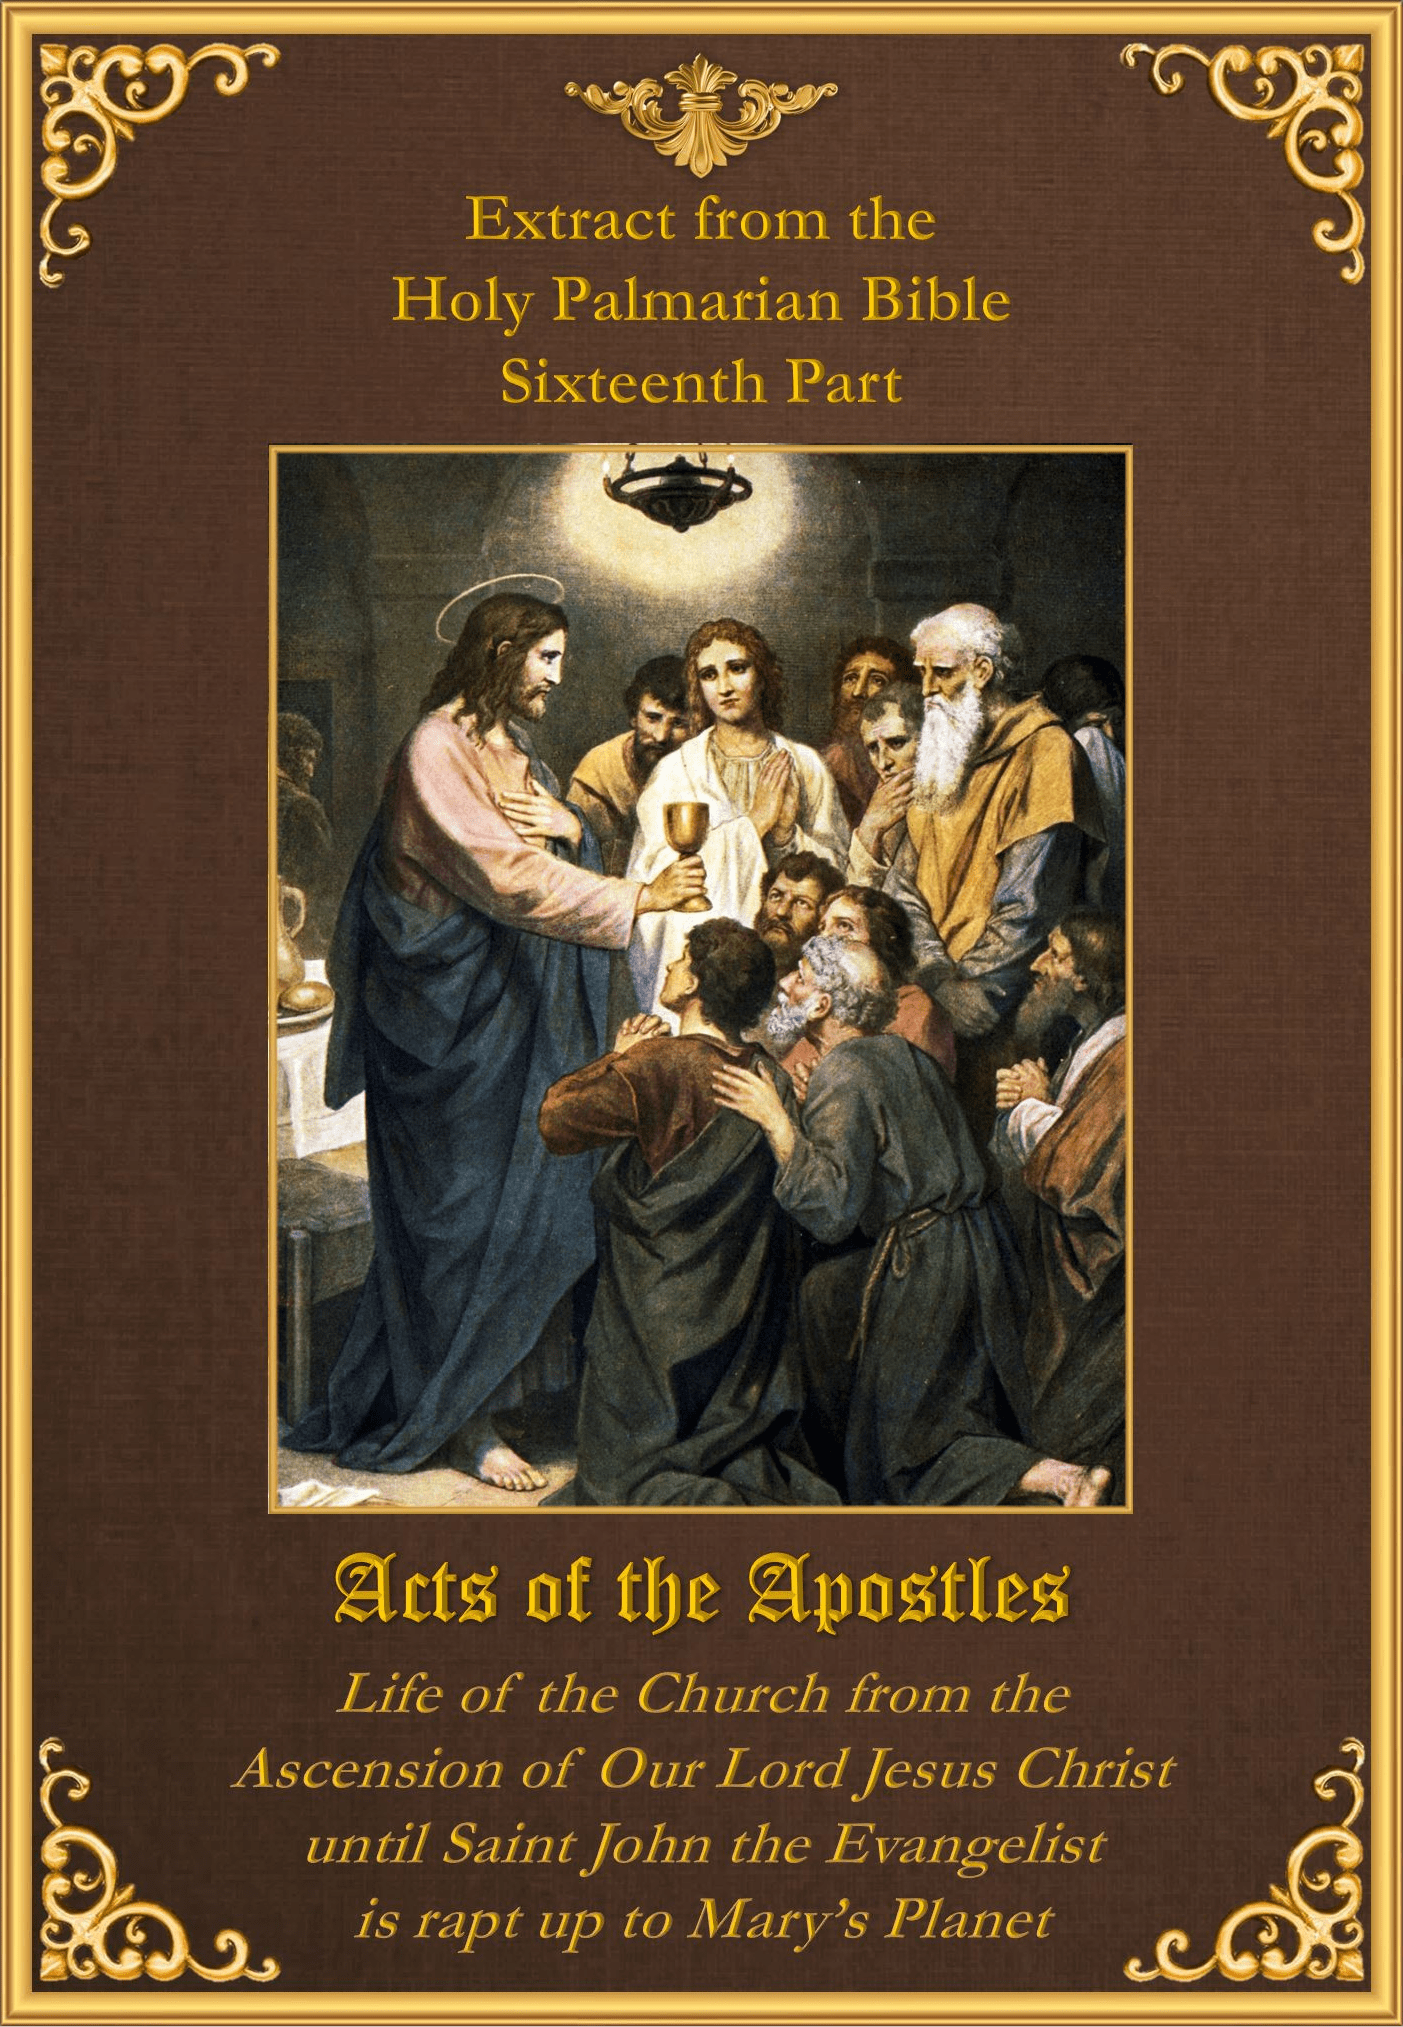 "<a href=""/wp-content/uploads/2019/06/Acts-of-the-Apostles-English.pdf"" title=""Acts of the Apostles"">Acts of the Apostles <br><br>Zobacz więcej</a>"